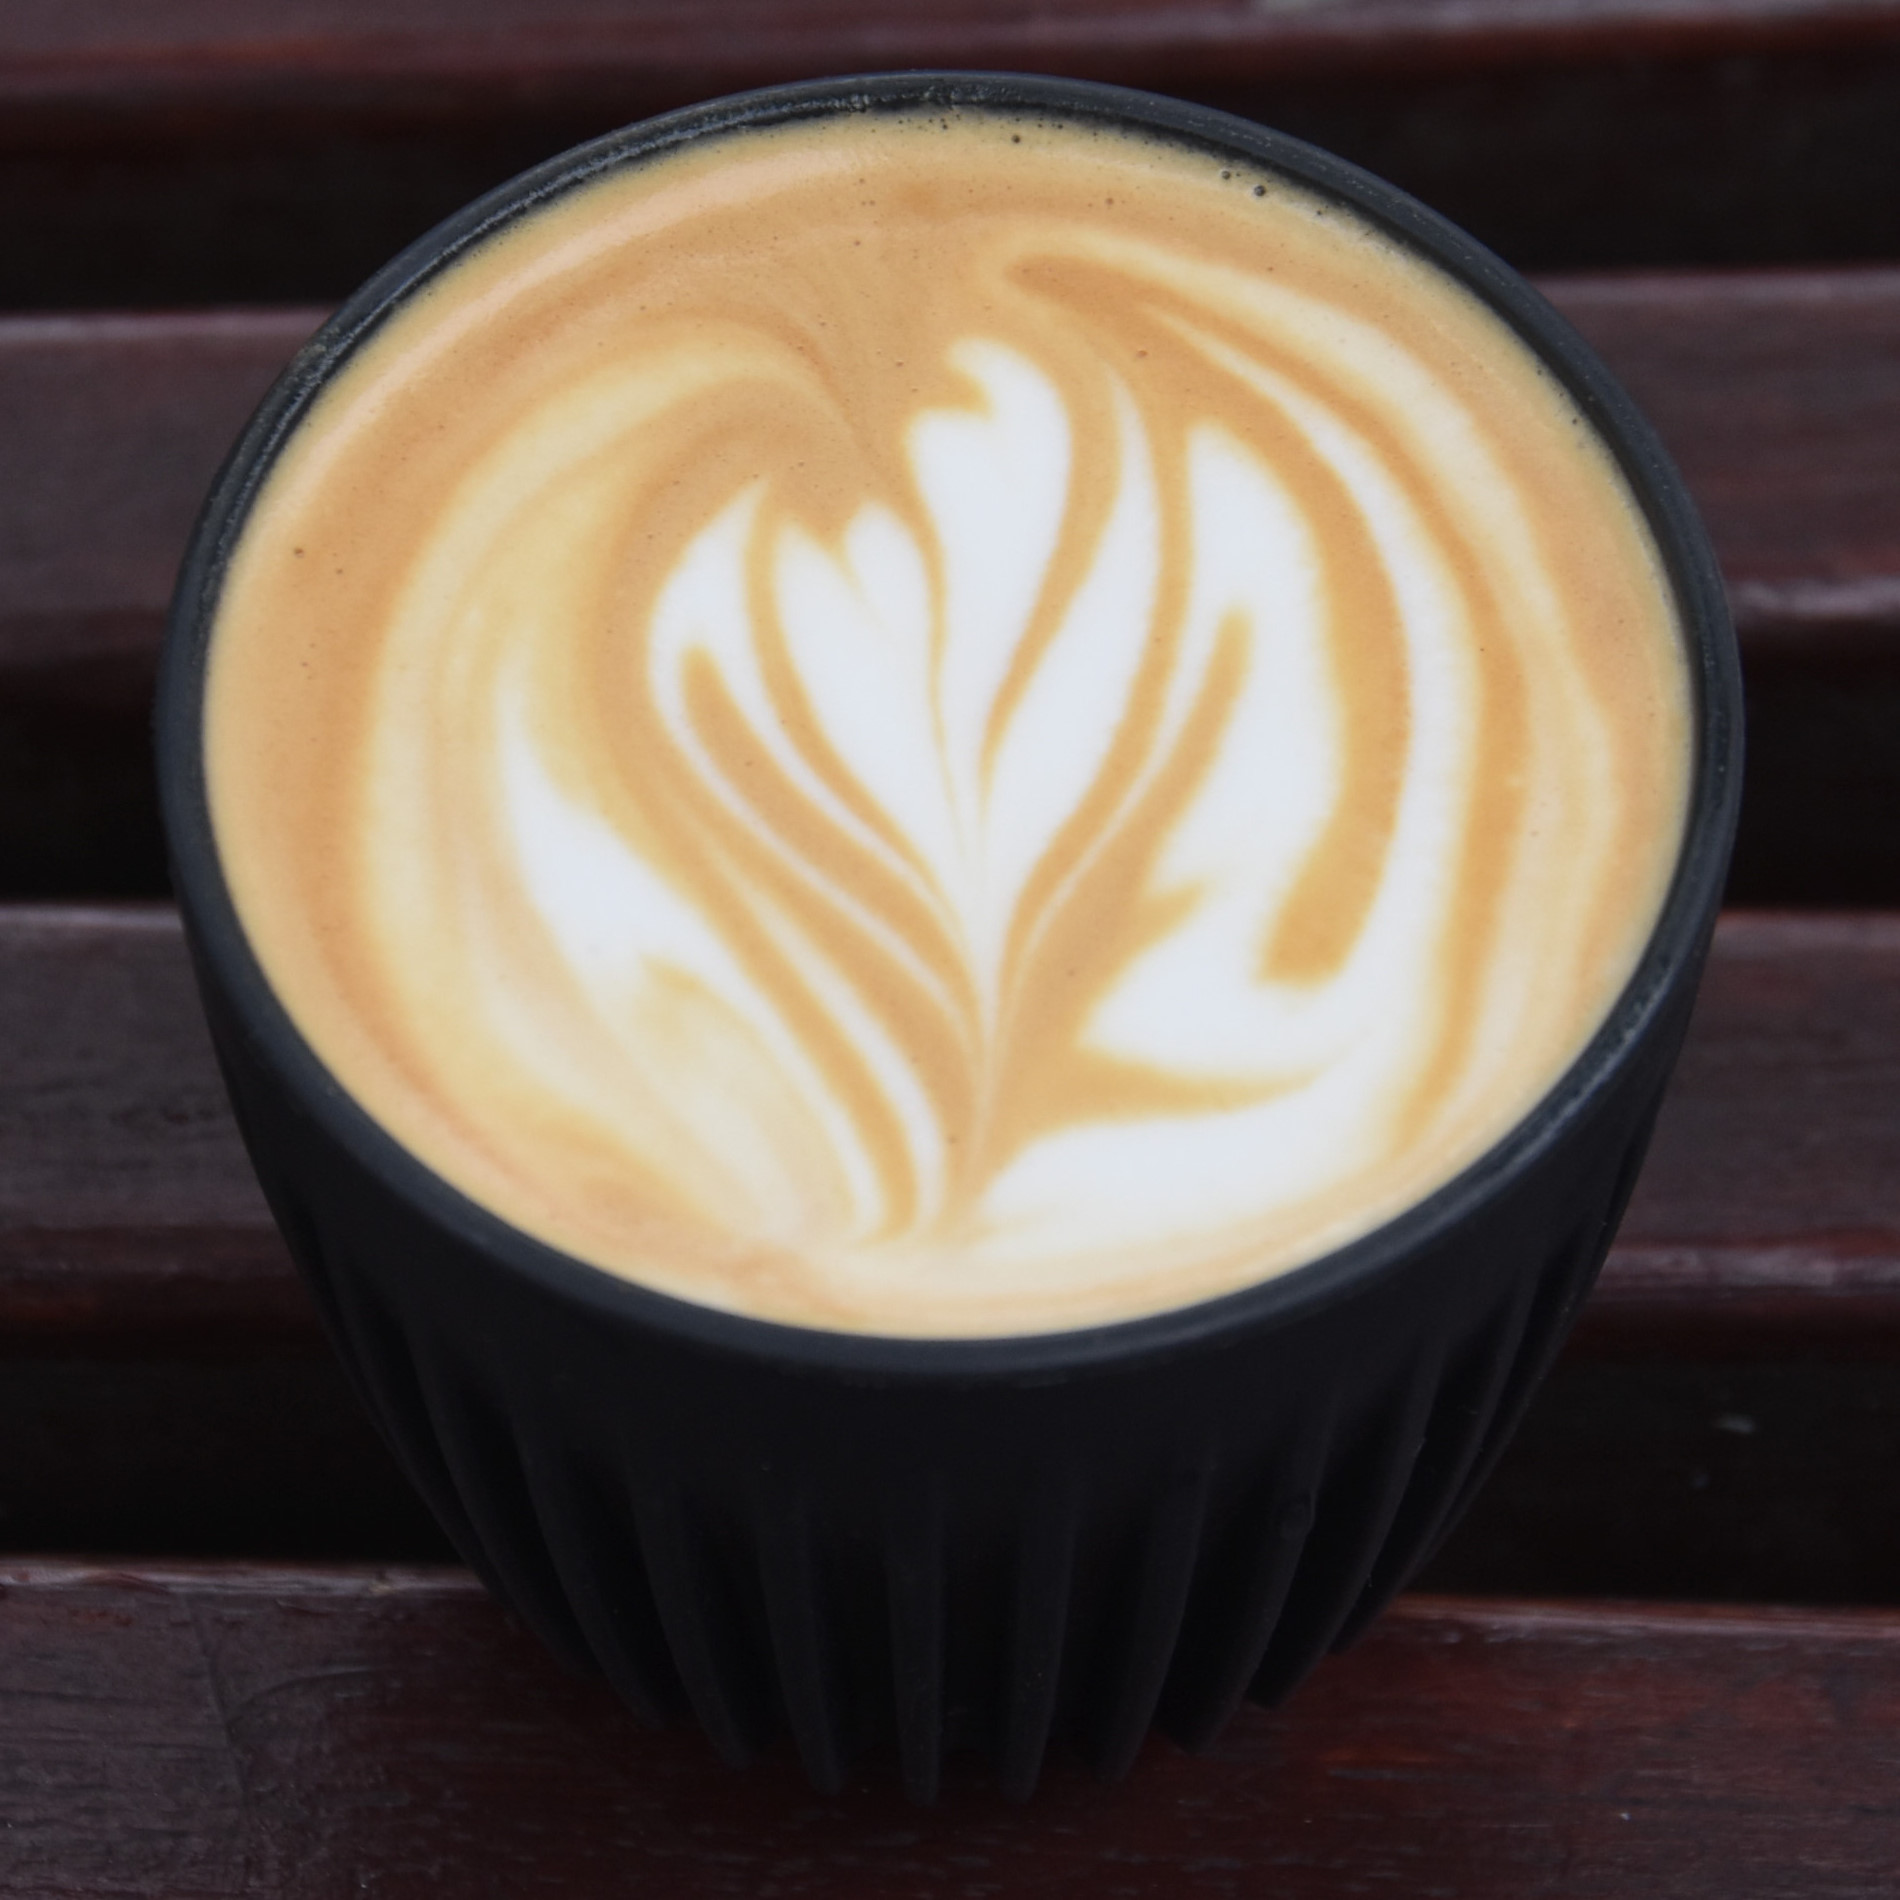 A lovely flat white with an abstract latte art pattern in it, made with the Over Under house blend and served in my HuskeeCup at Over Under Coffee, Wandsworth Town.